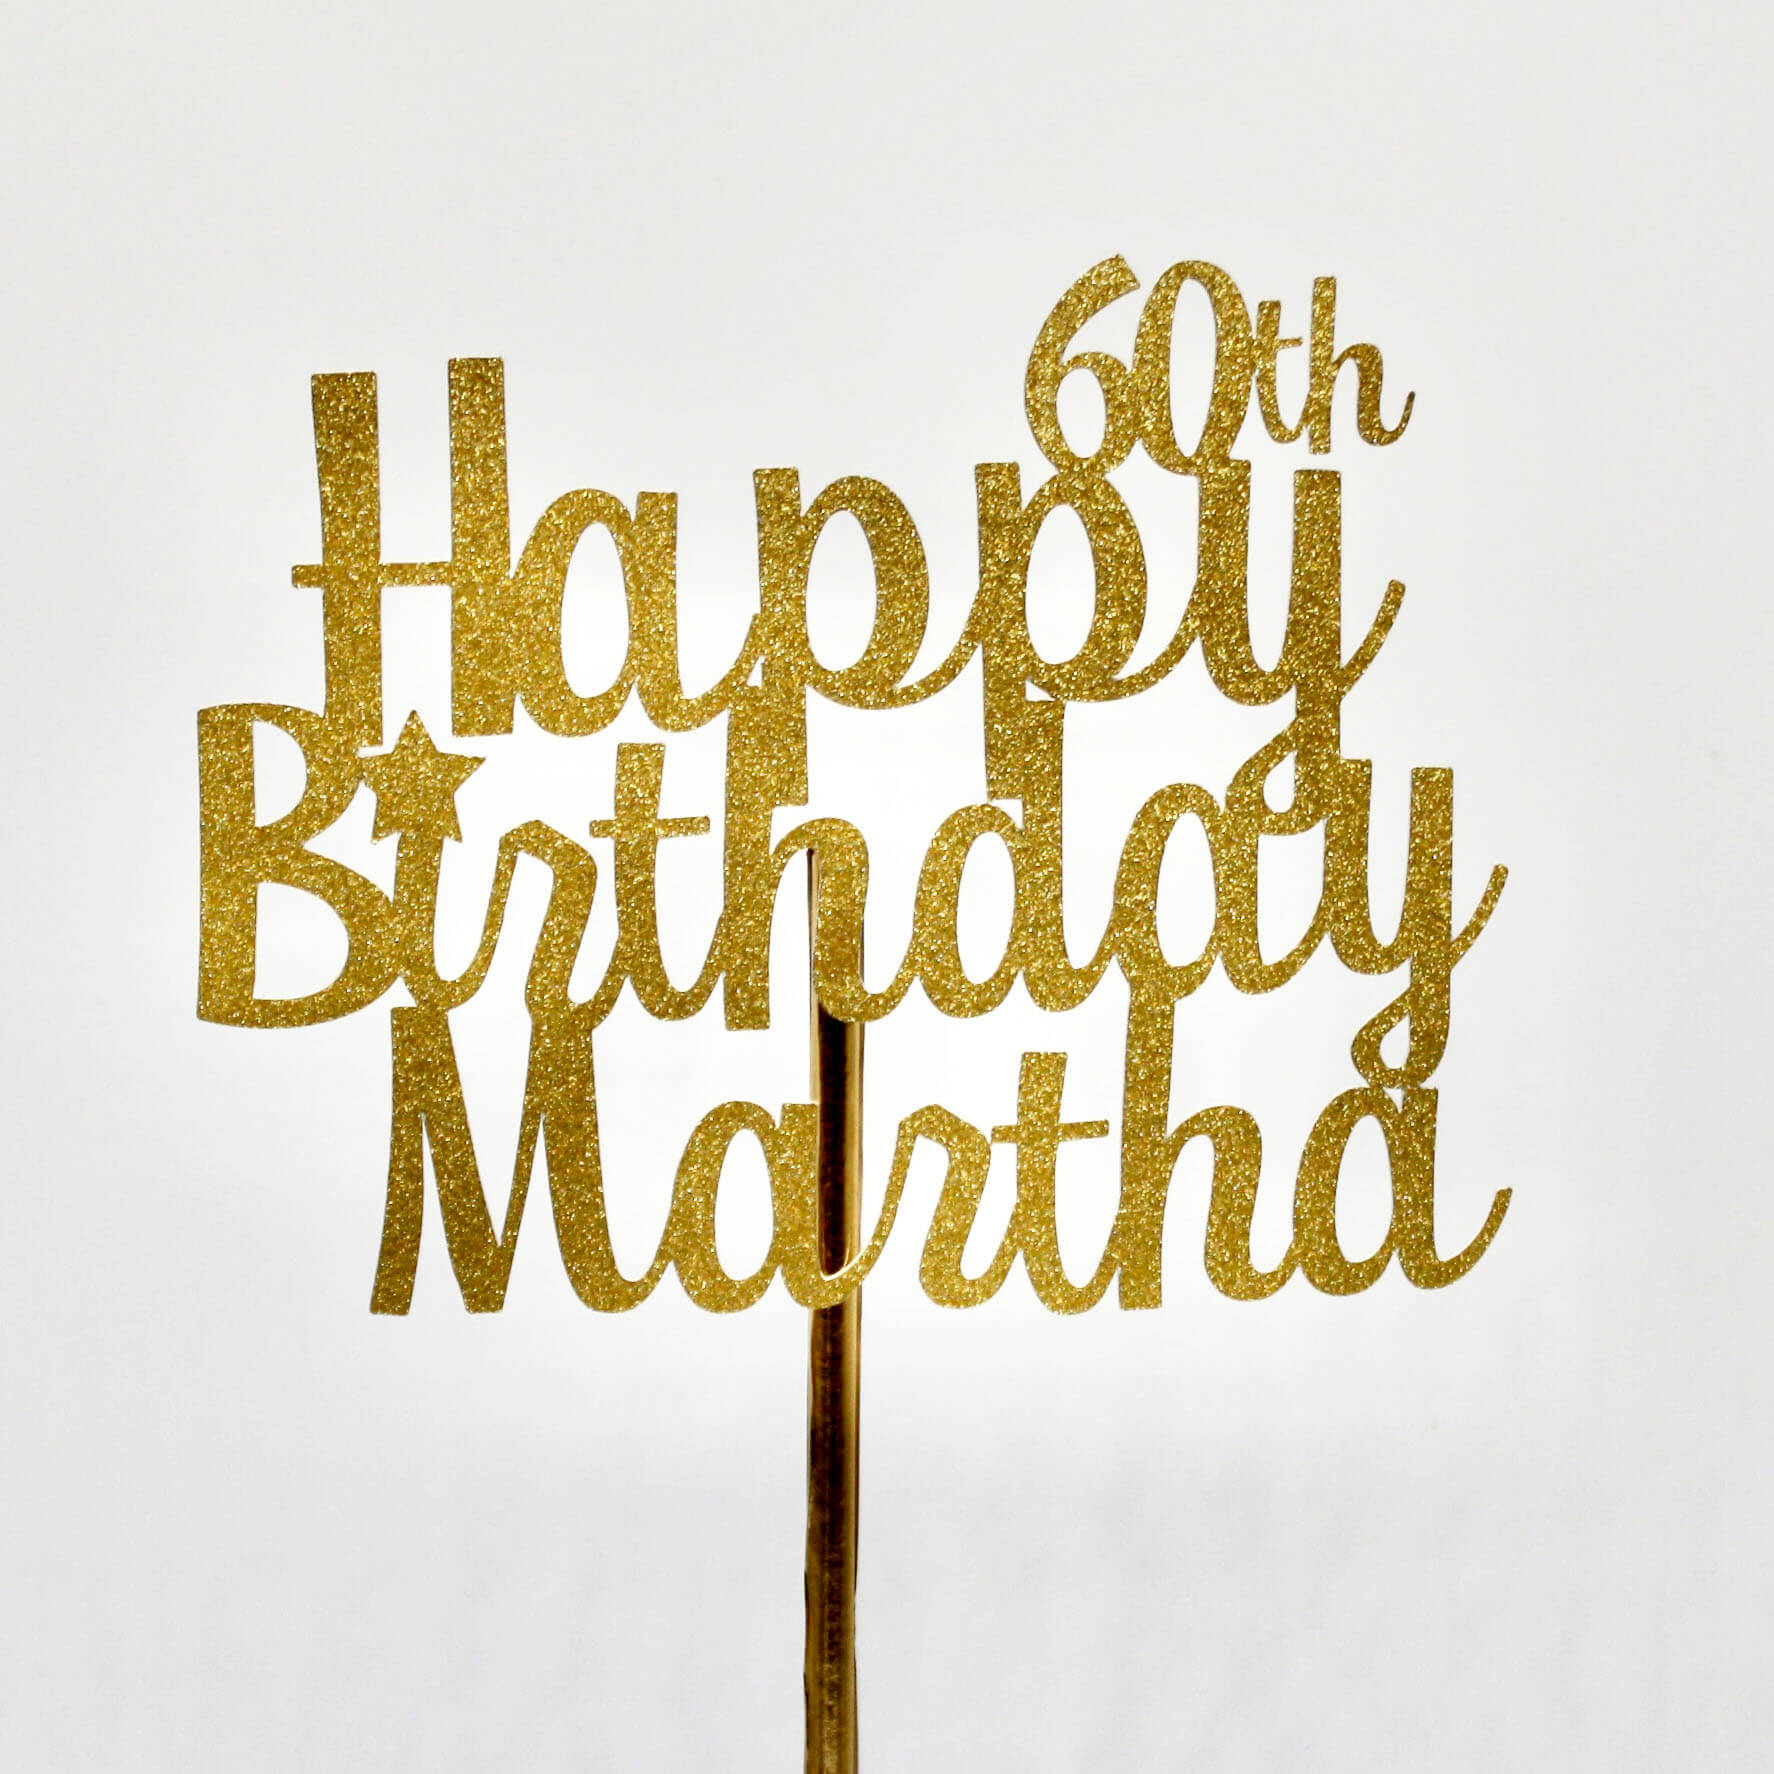 50th Birthday Cake Topper, Customizable Party Decorations, in Gold Glitter Finish